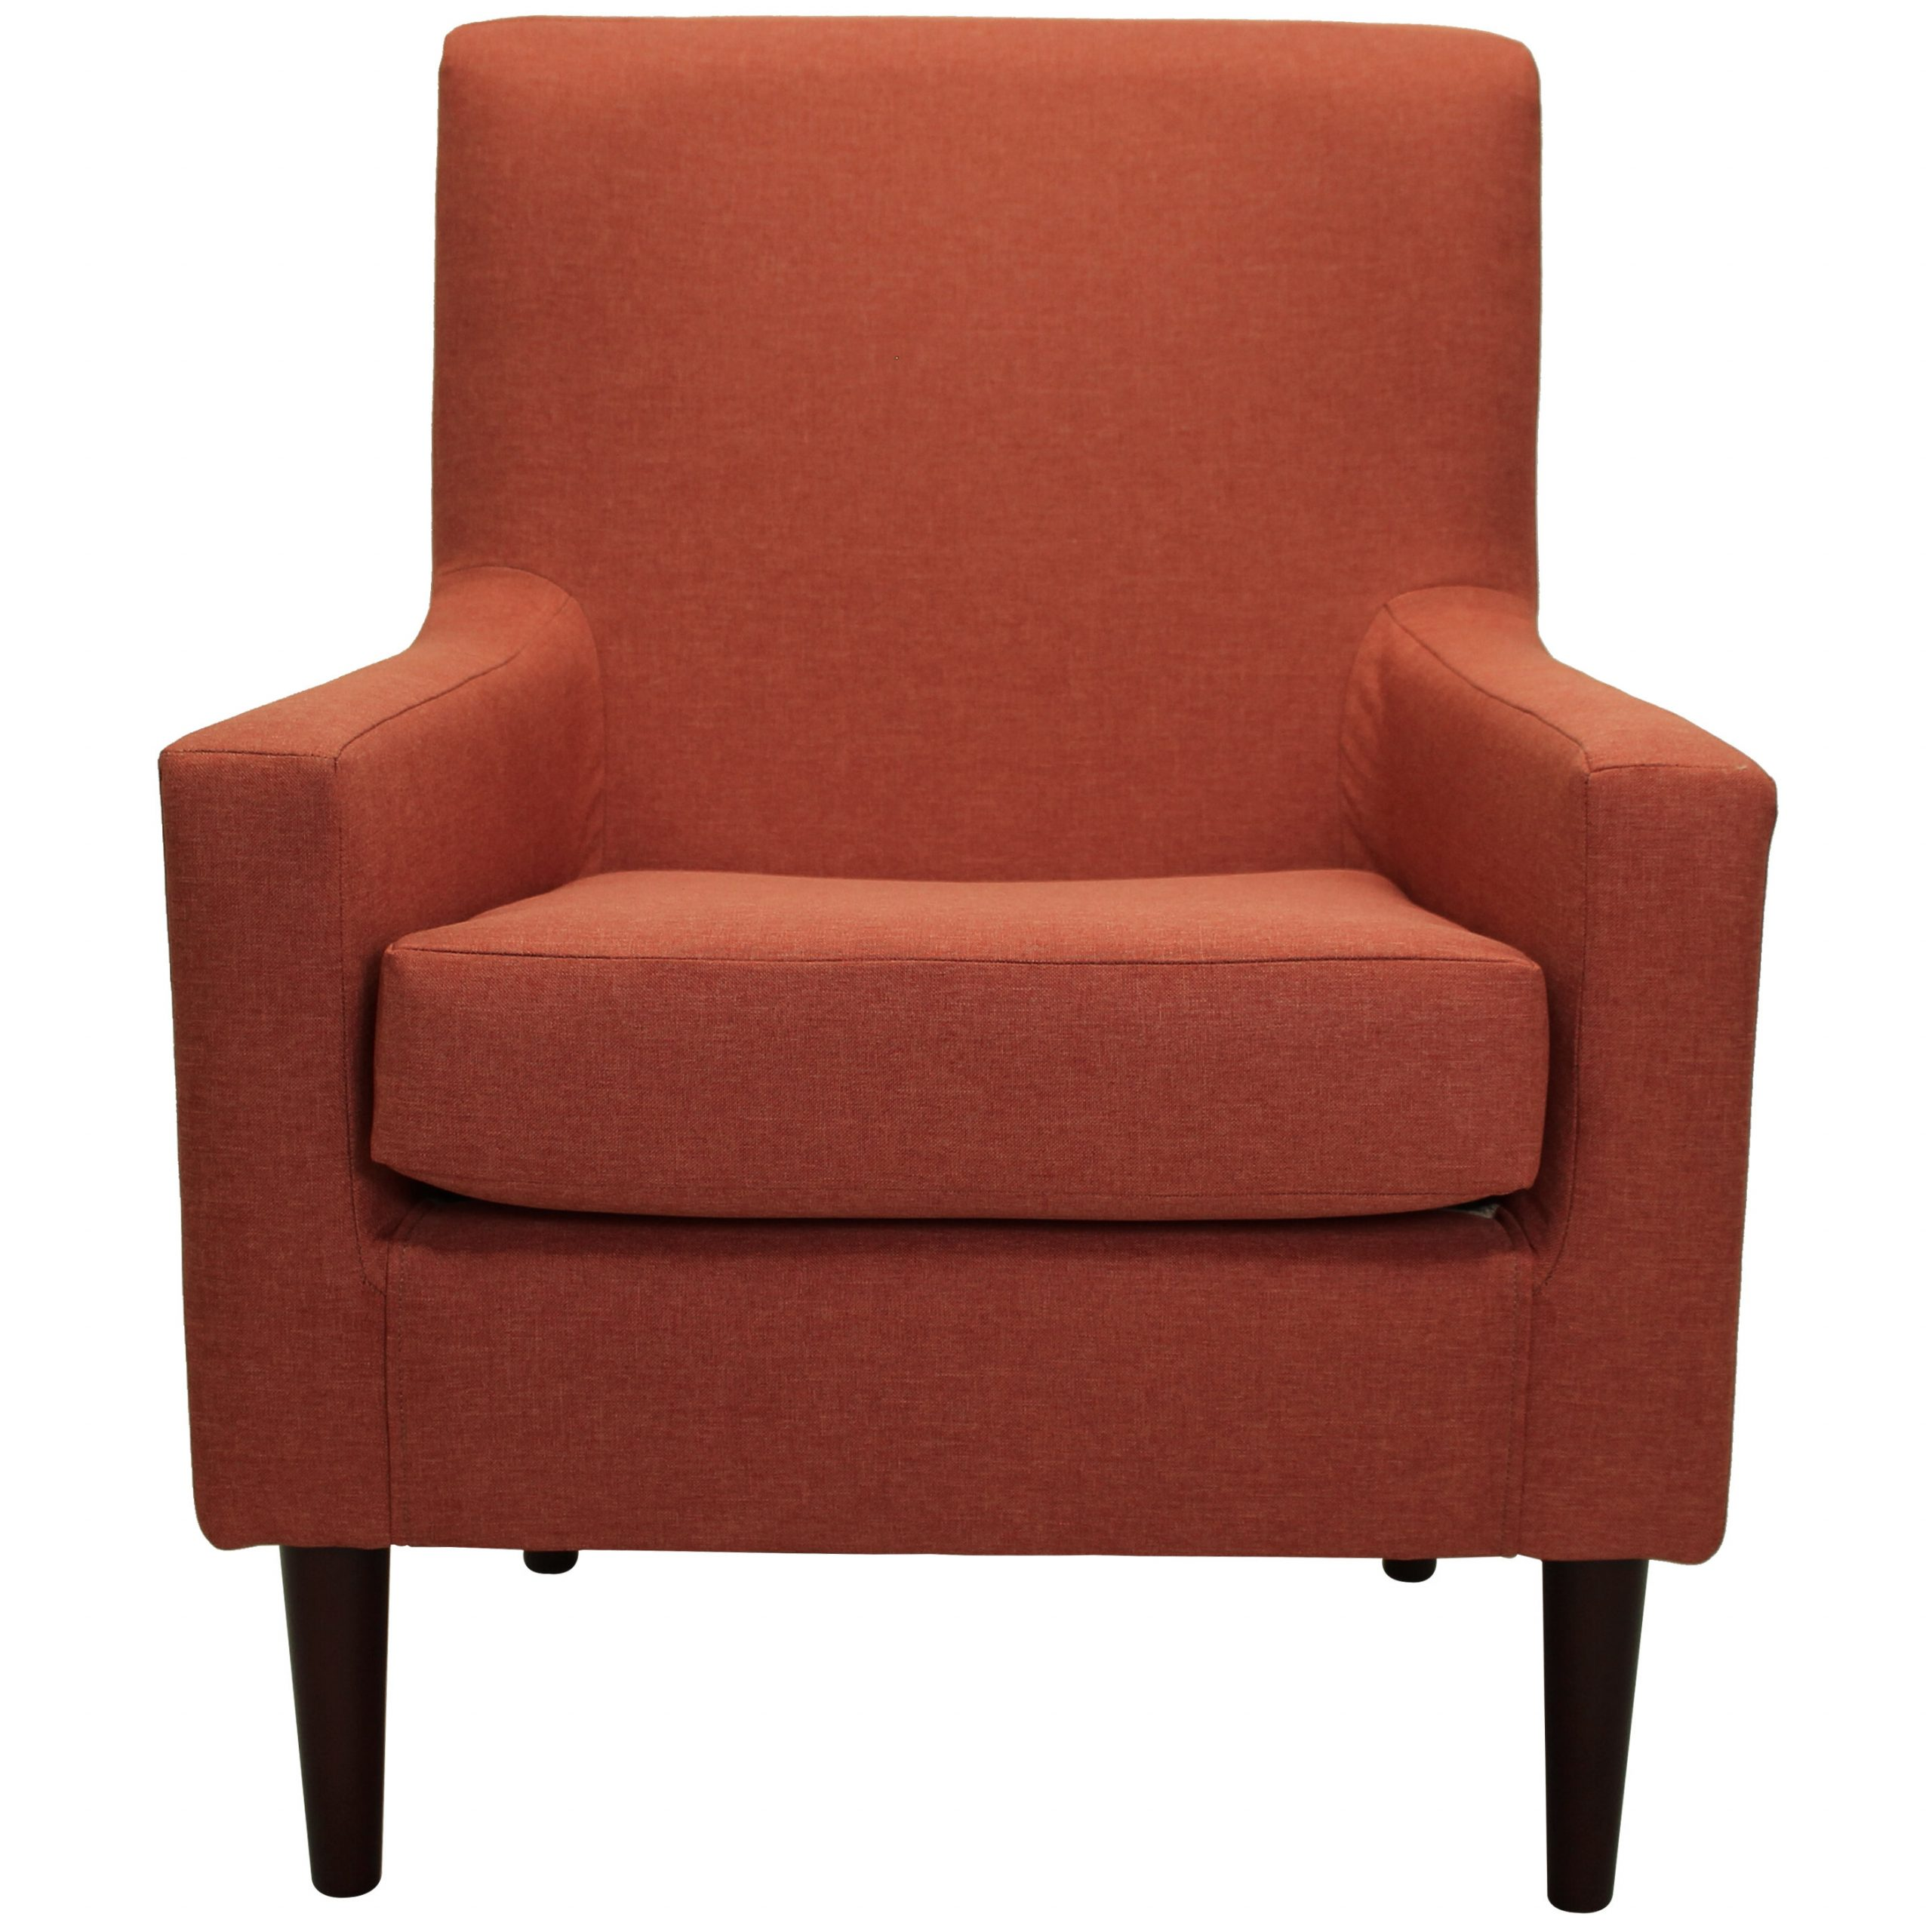 Brown Orange Accent Chairs You'll Love In (View 5 of 20)